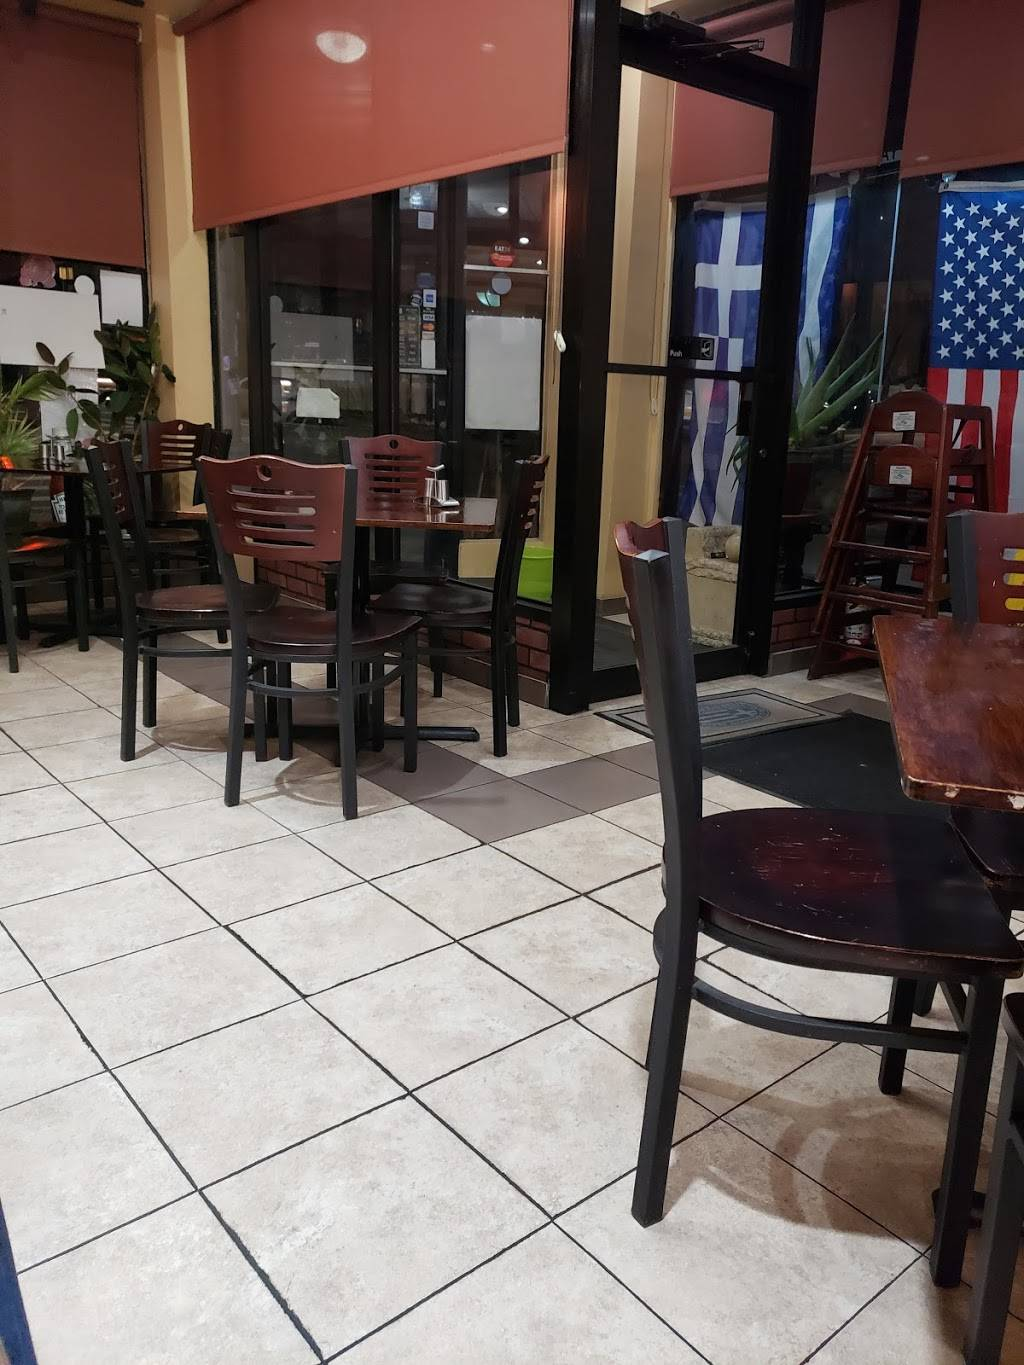 Village Grill | meal takeaway | 7301 Yellowstone Blvd, Forest Hills, NY 11375, USA | 7185444024 OR +1 718-544-4024